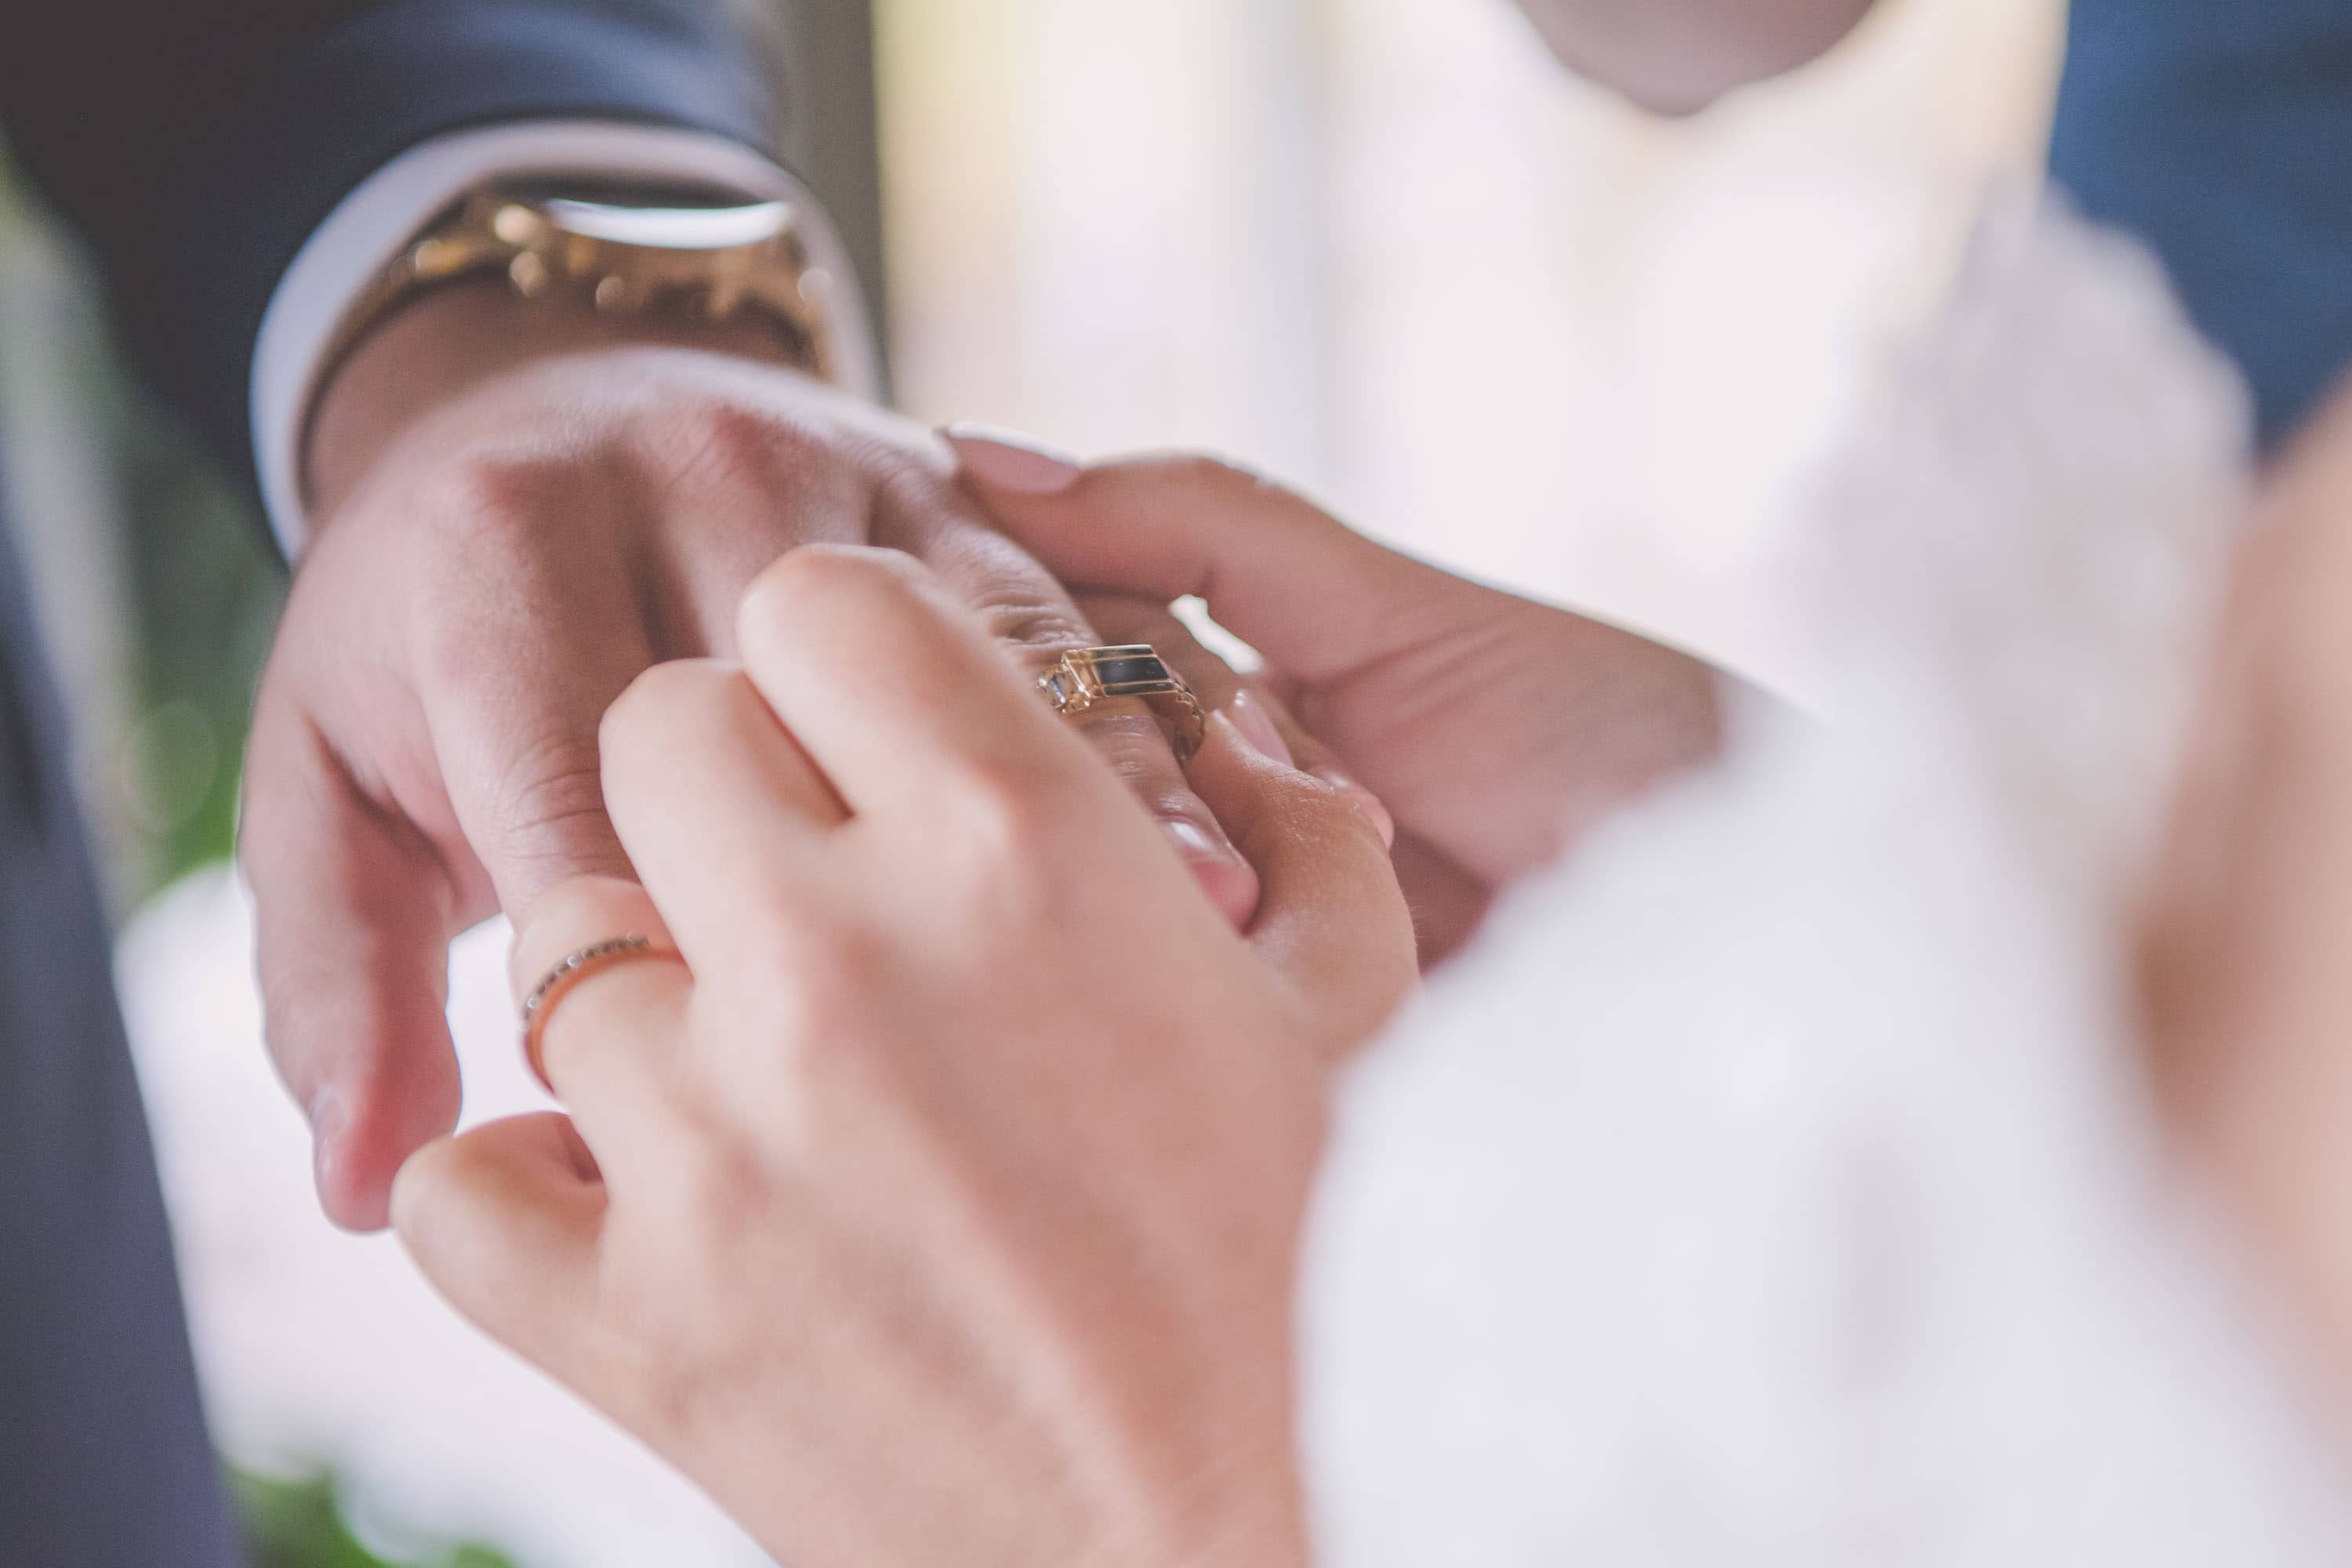 Alicia puts a gold ring on Lachlan's finger at their wedding